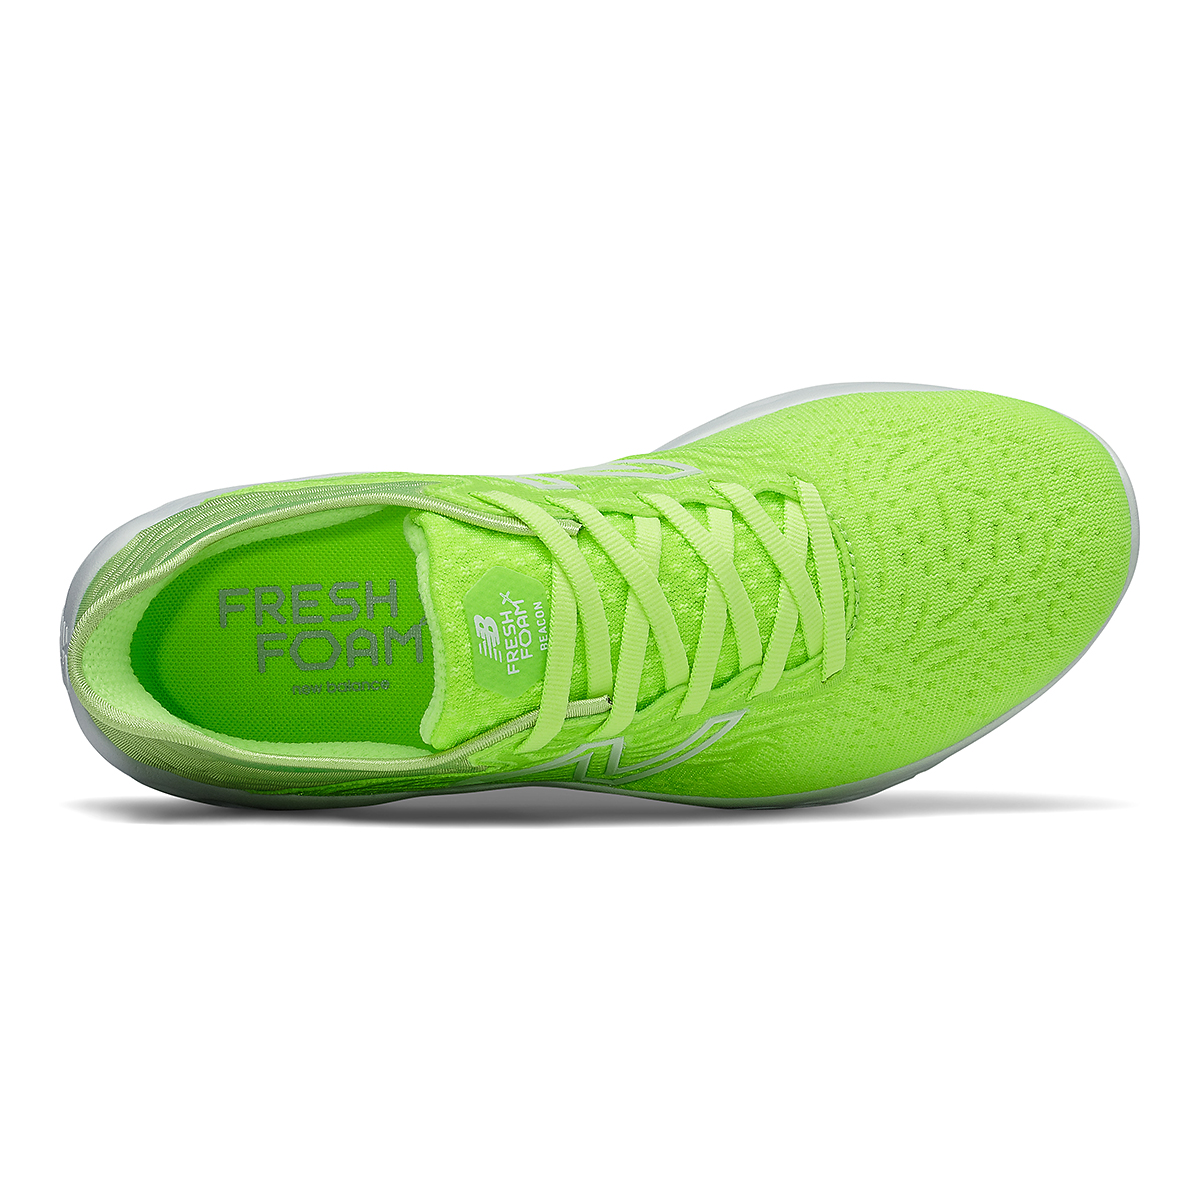 Women's New Balance Beacon V3 Running Shoe - Color: Lime Glo - Size: 6 - Width: Regular, Lime Glo, large, image 3